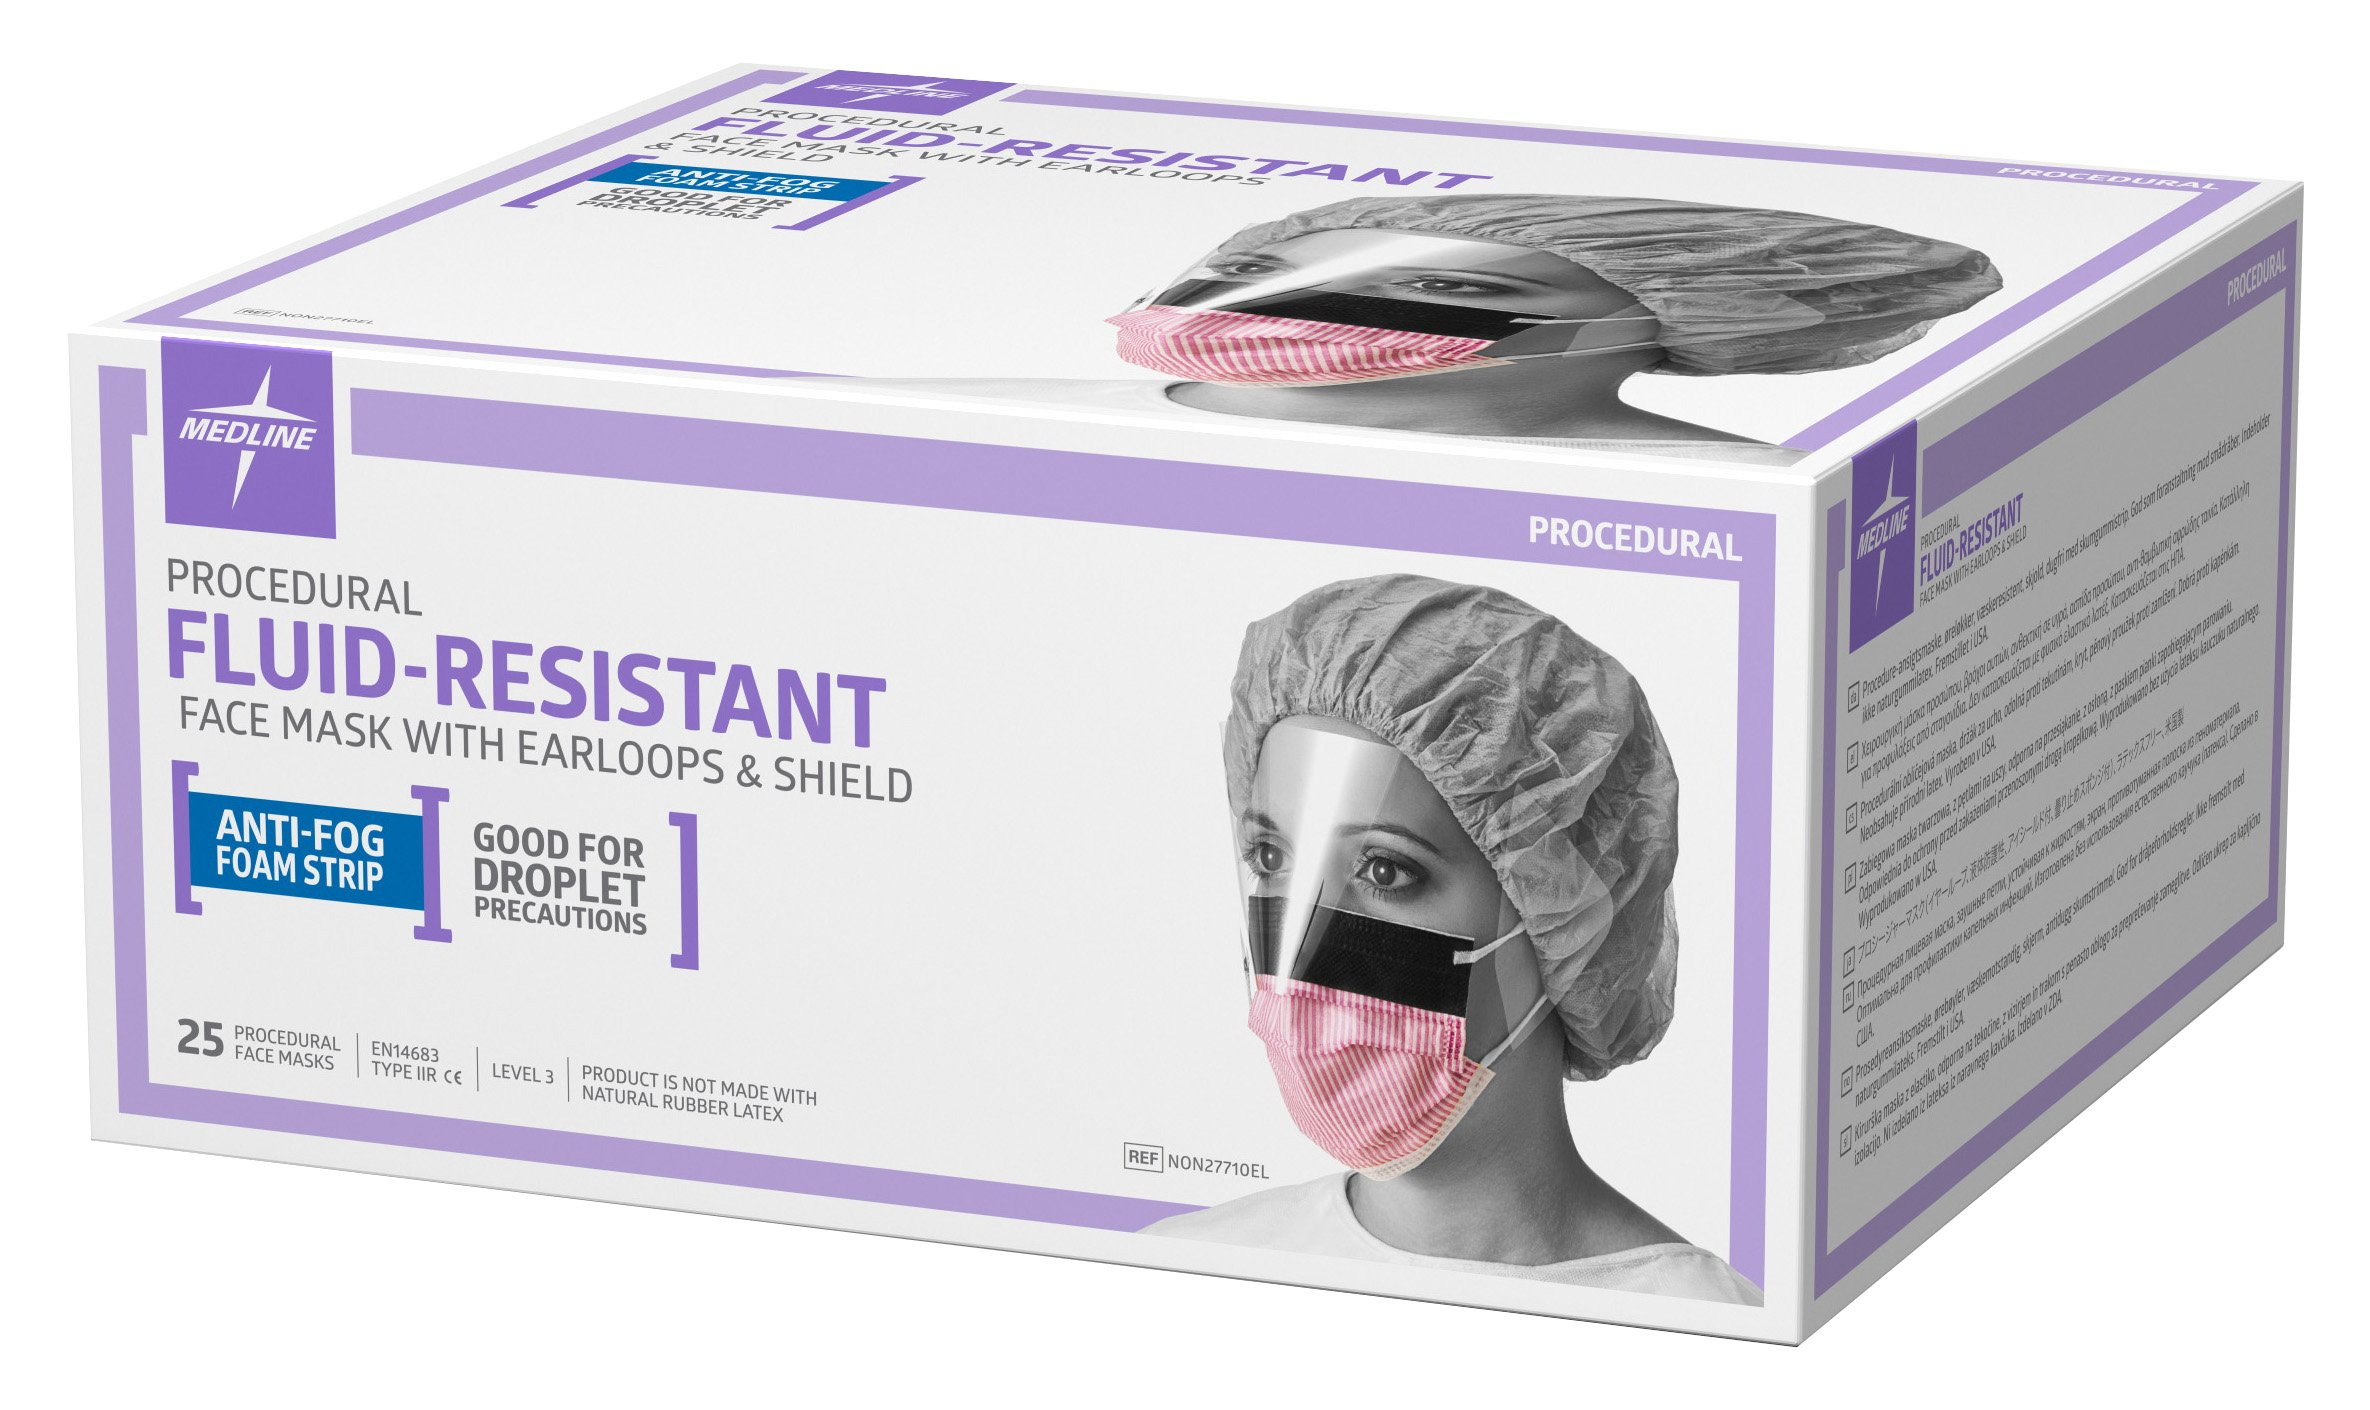 Medline NON27710EL Fluid-Resistant Surgical Face Masks with Eyeshield and Earloop, Cellulose, Anti Fog, Latex Free, Purple and White (Pack of 100) by Medline (Image #4)